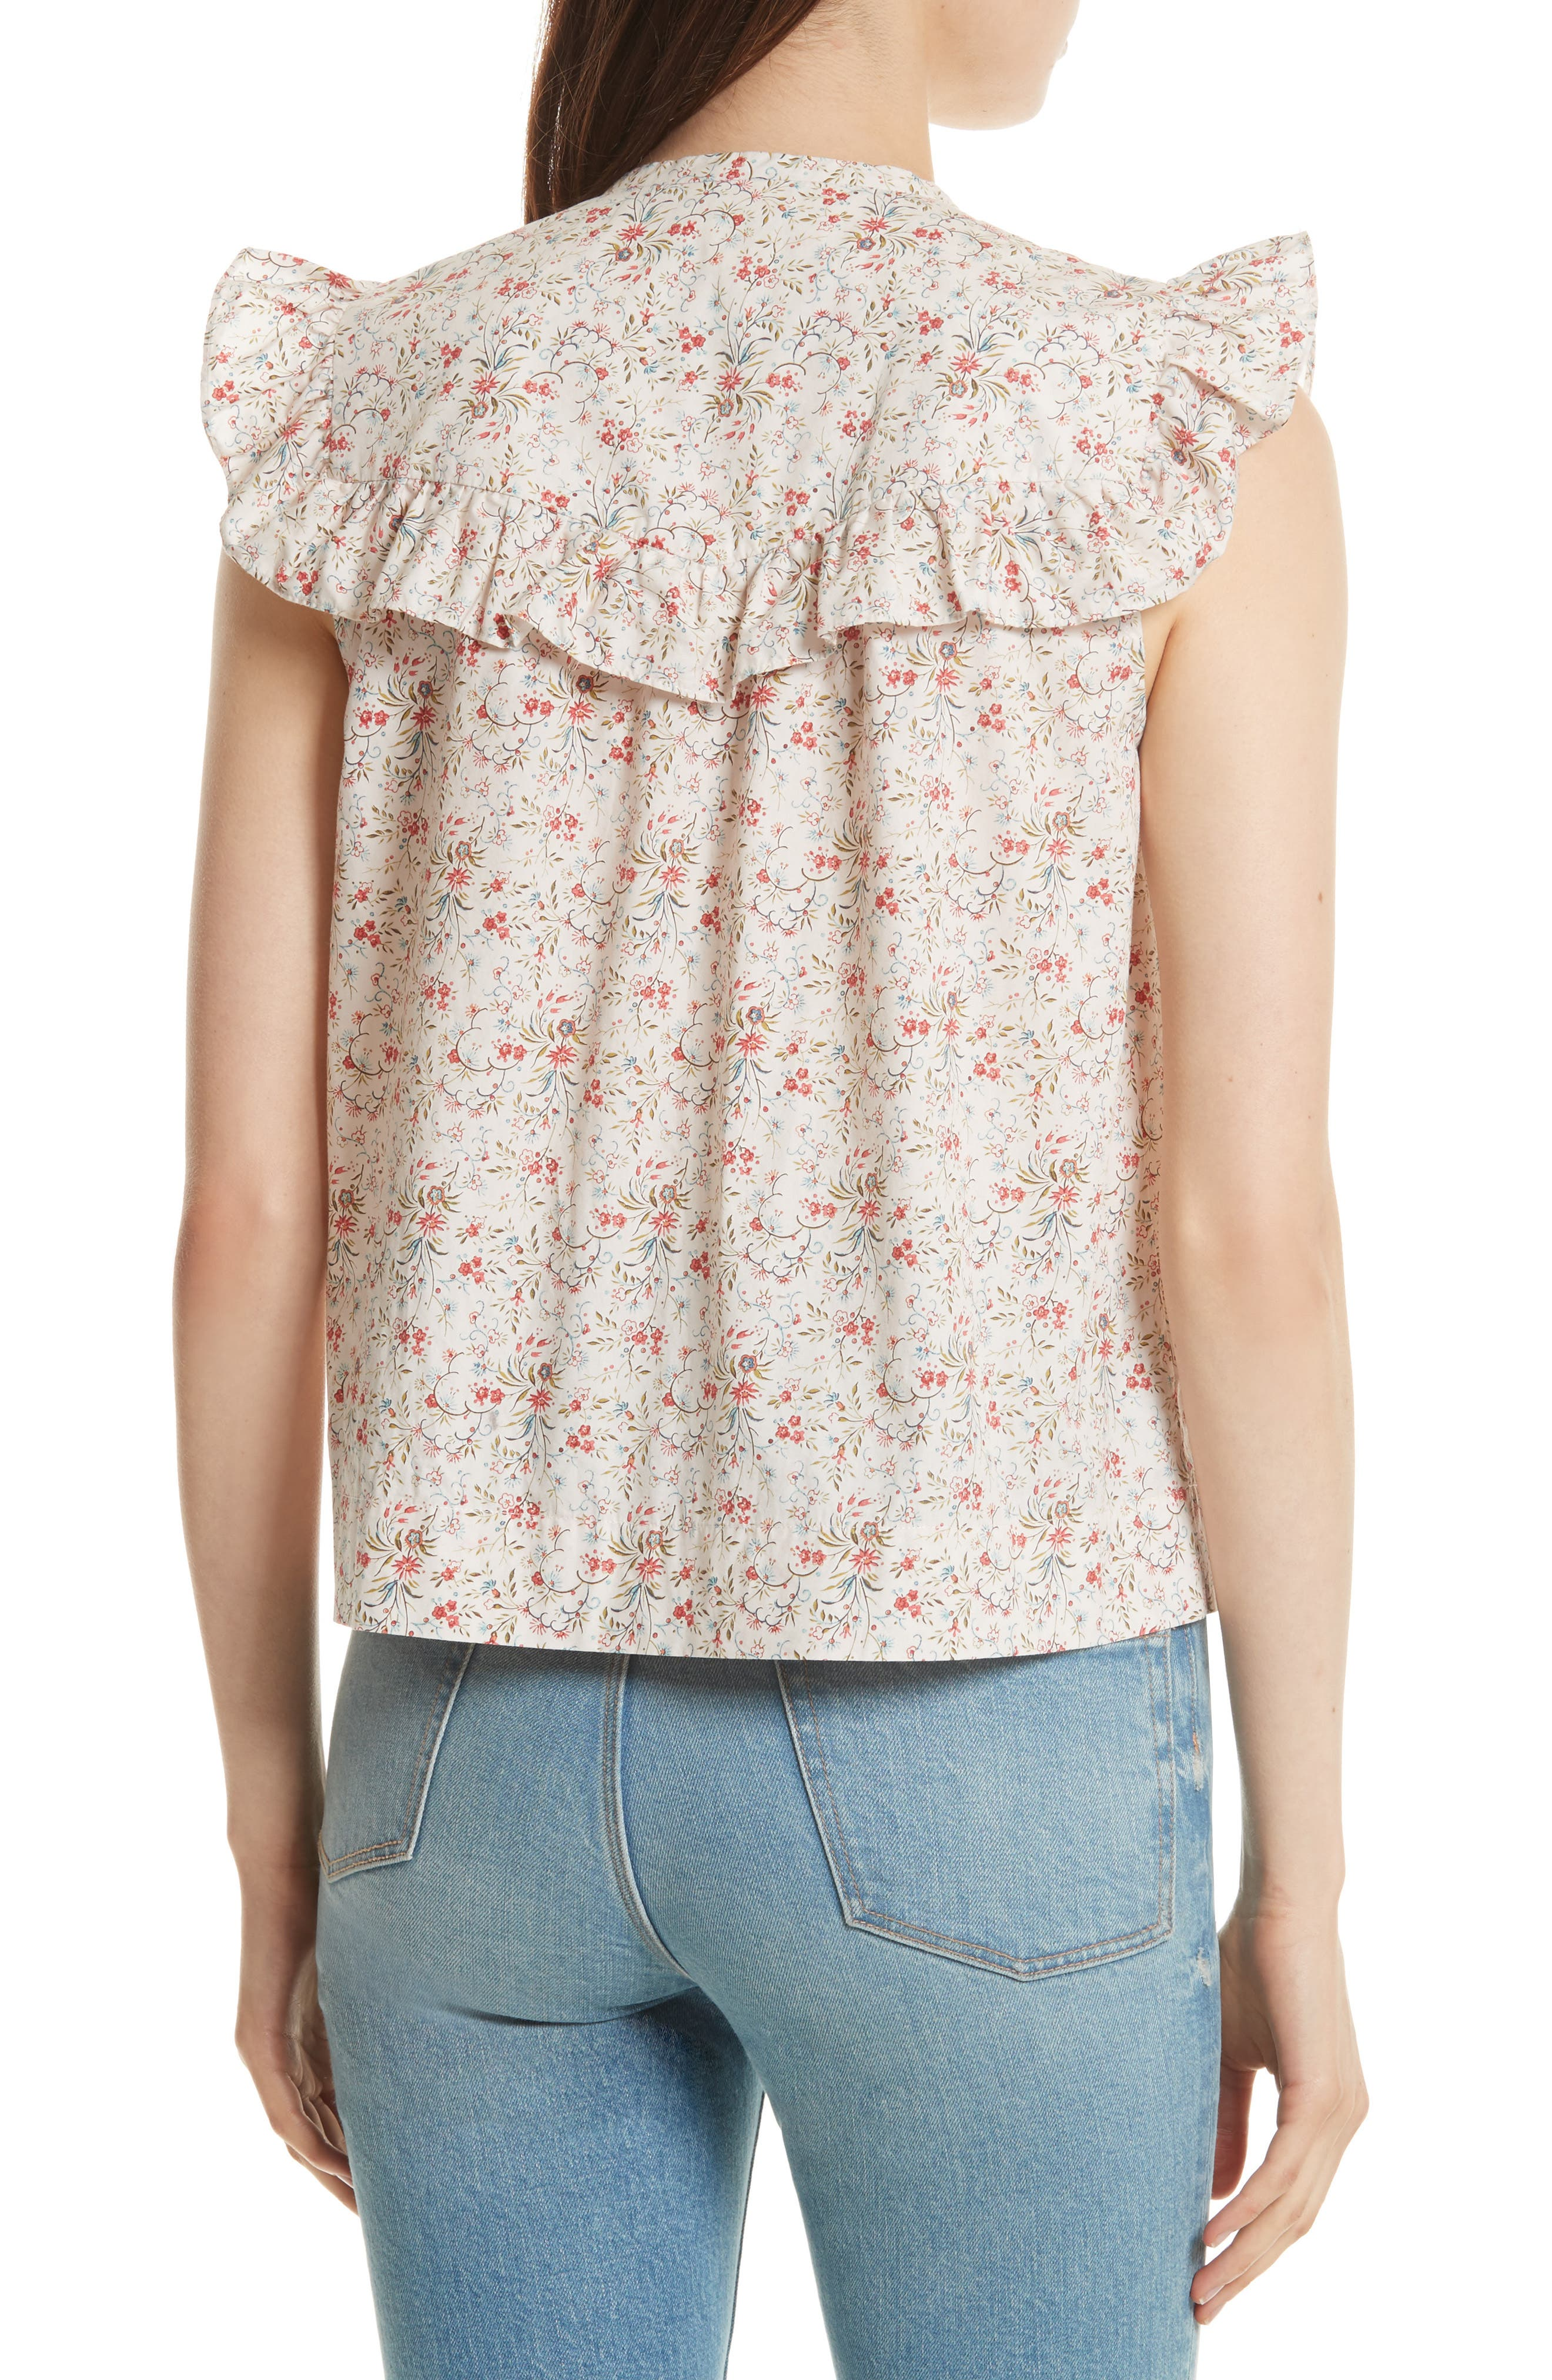 Brittany Sleeveless Floral Blouse,                             Alternate thumbnail 2, color,                             902